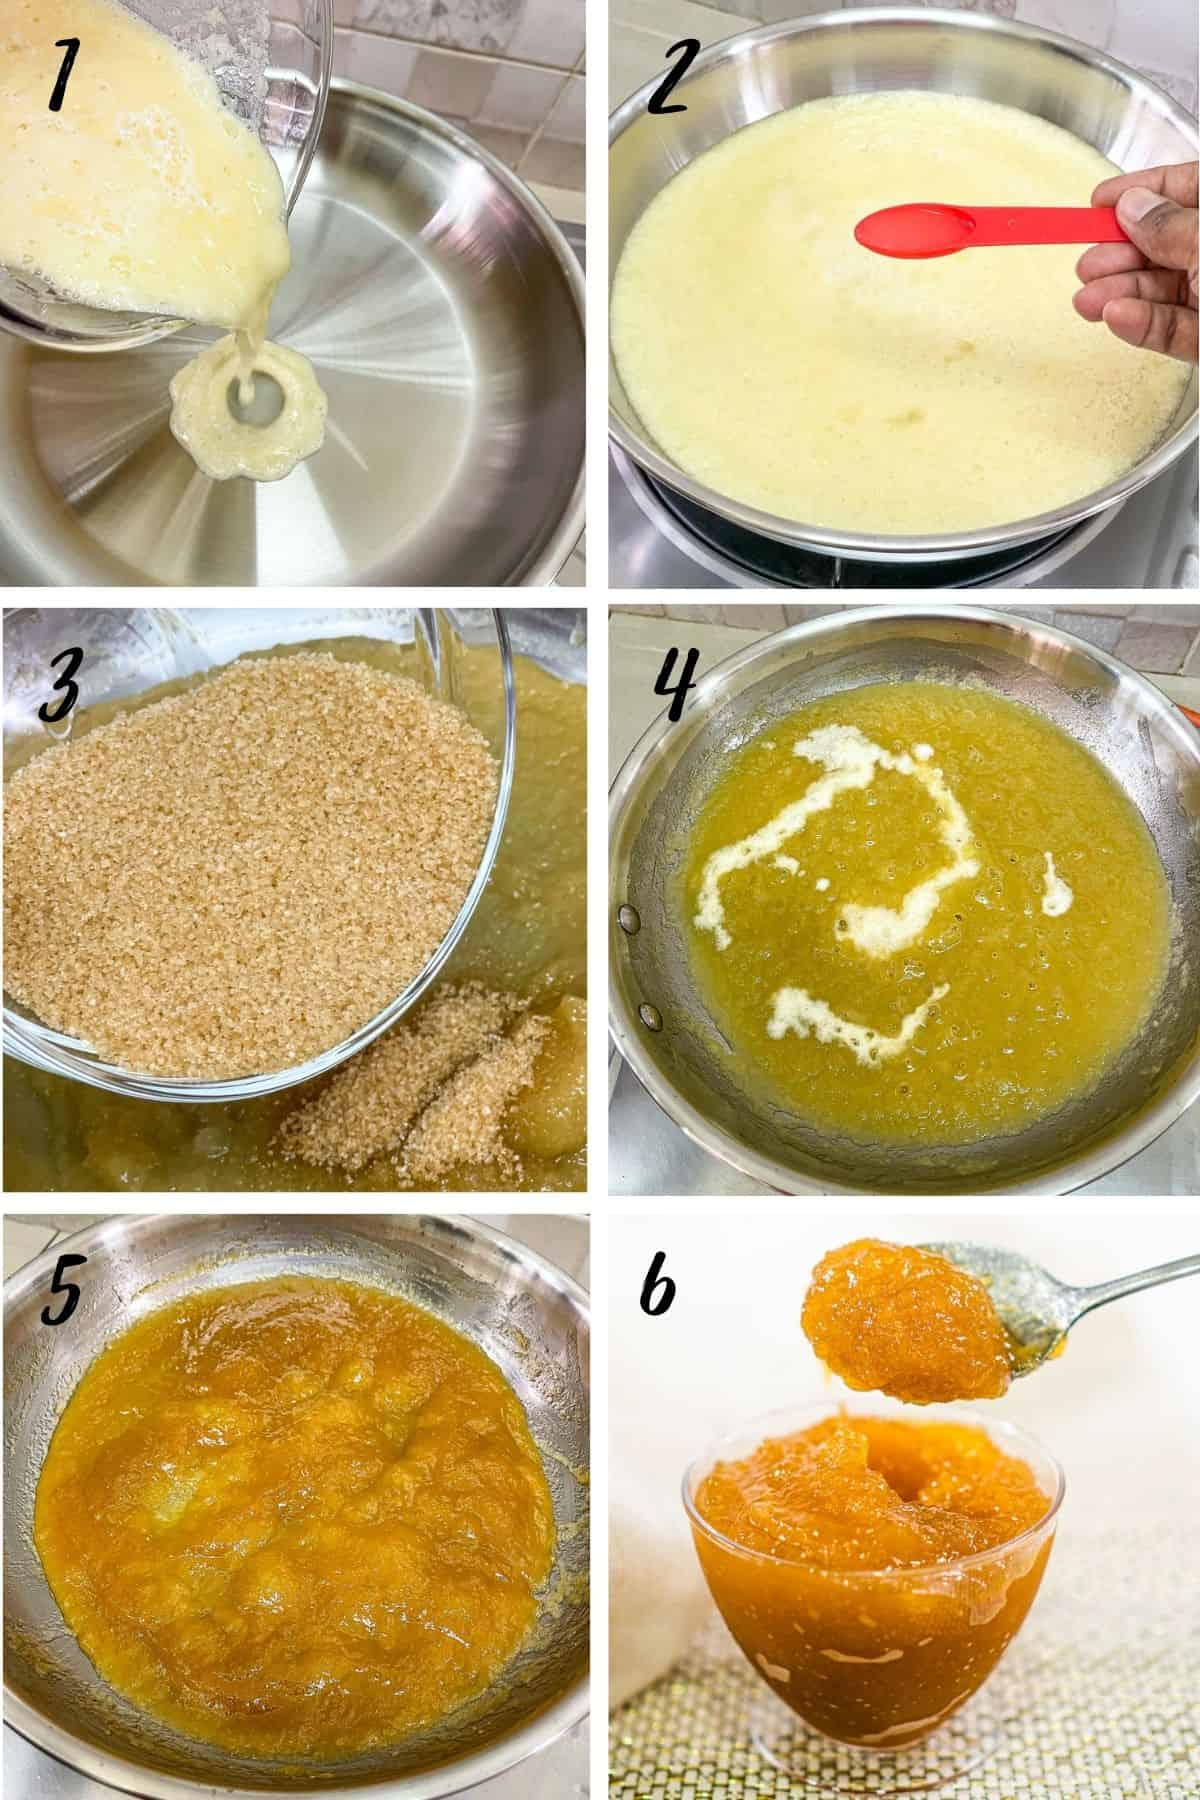 A poster of 6 images showing how to make pineapple filling